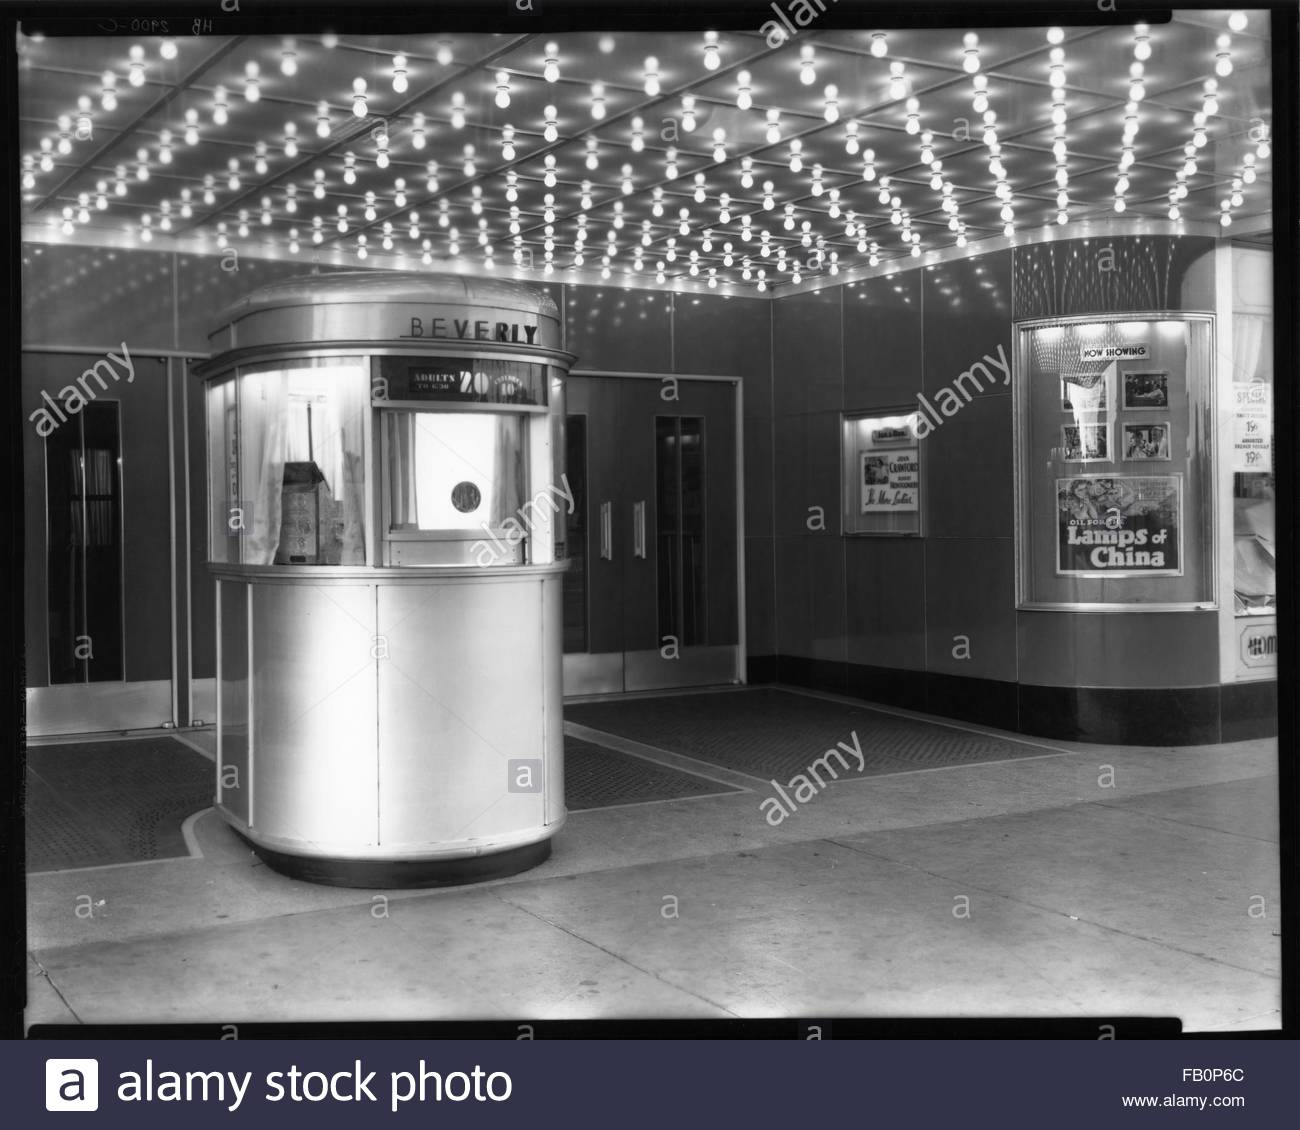 Beverly Theater and other Chicago views, 1935 Aug. 15. Ticket booth. - Stock Image